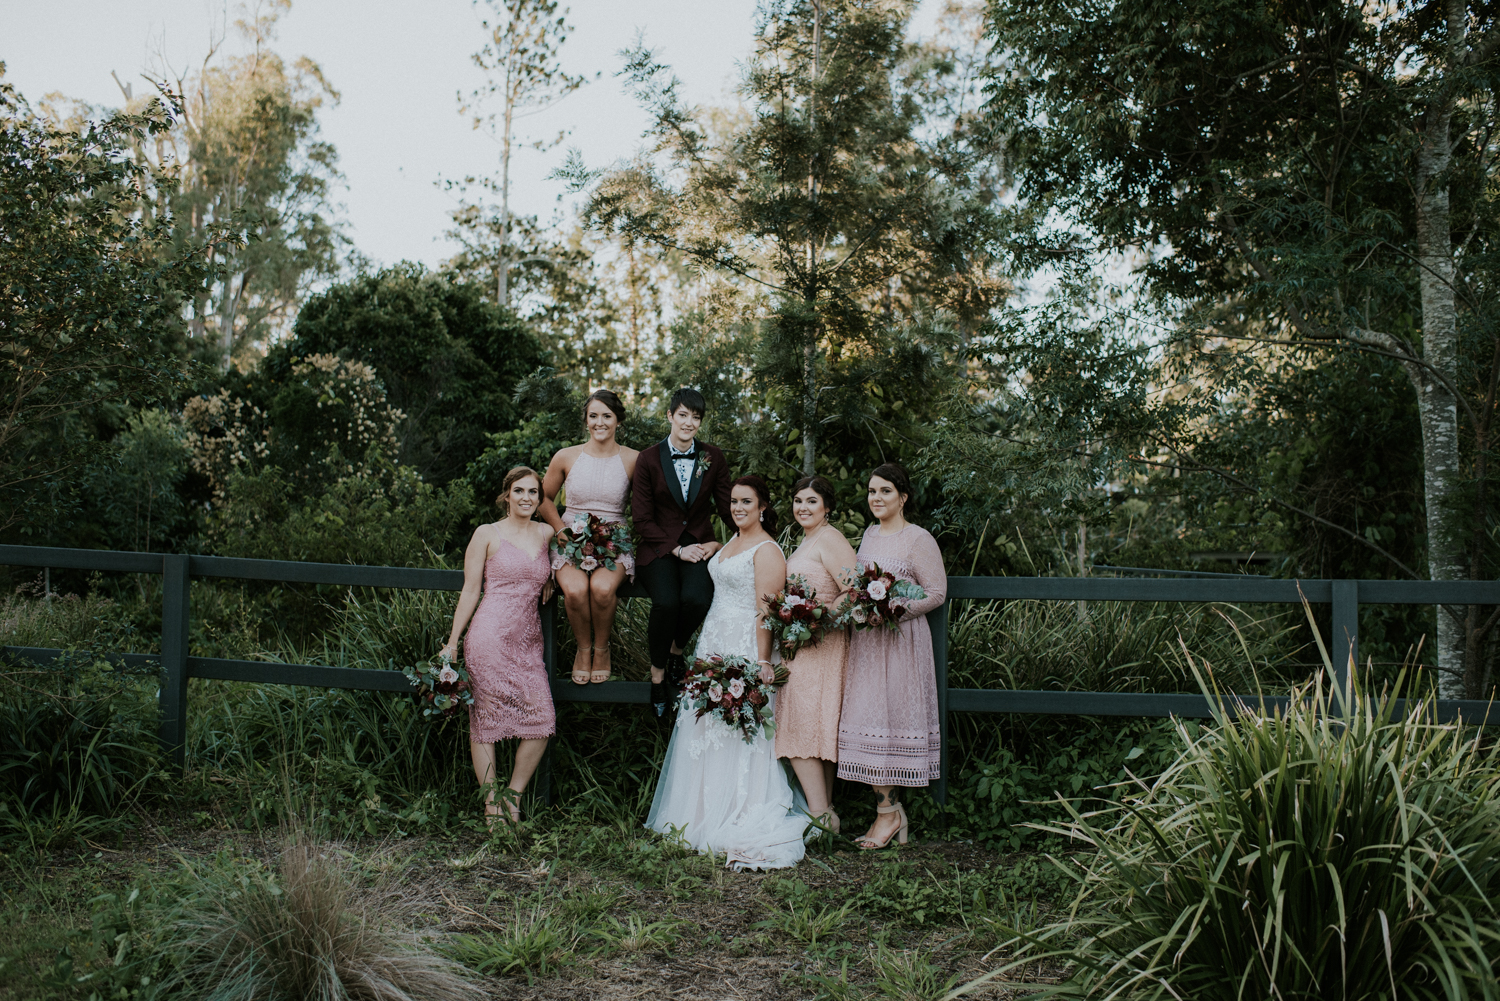 Brisbane Wedding Photographer | Walkabout Creek Photography-72.jpg